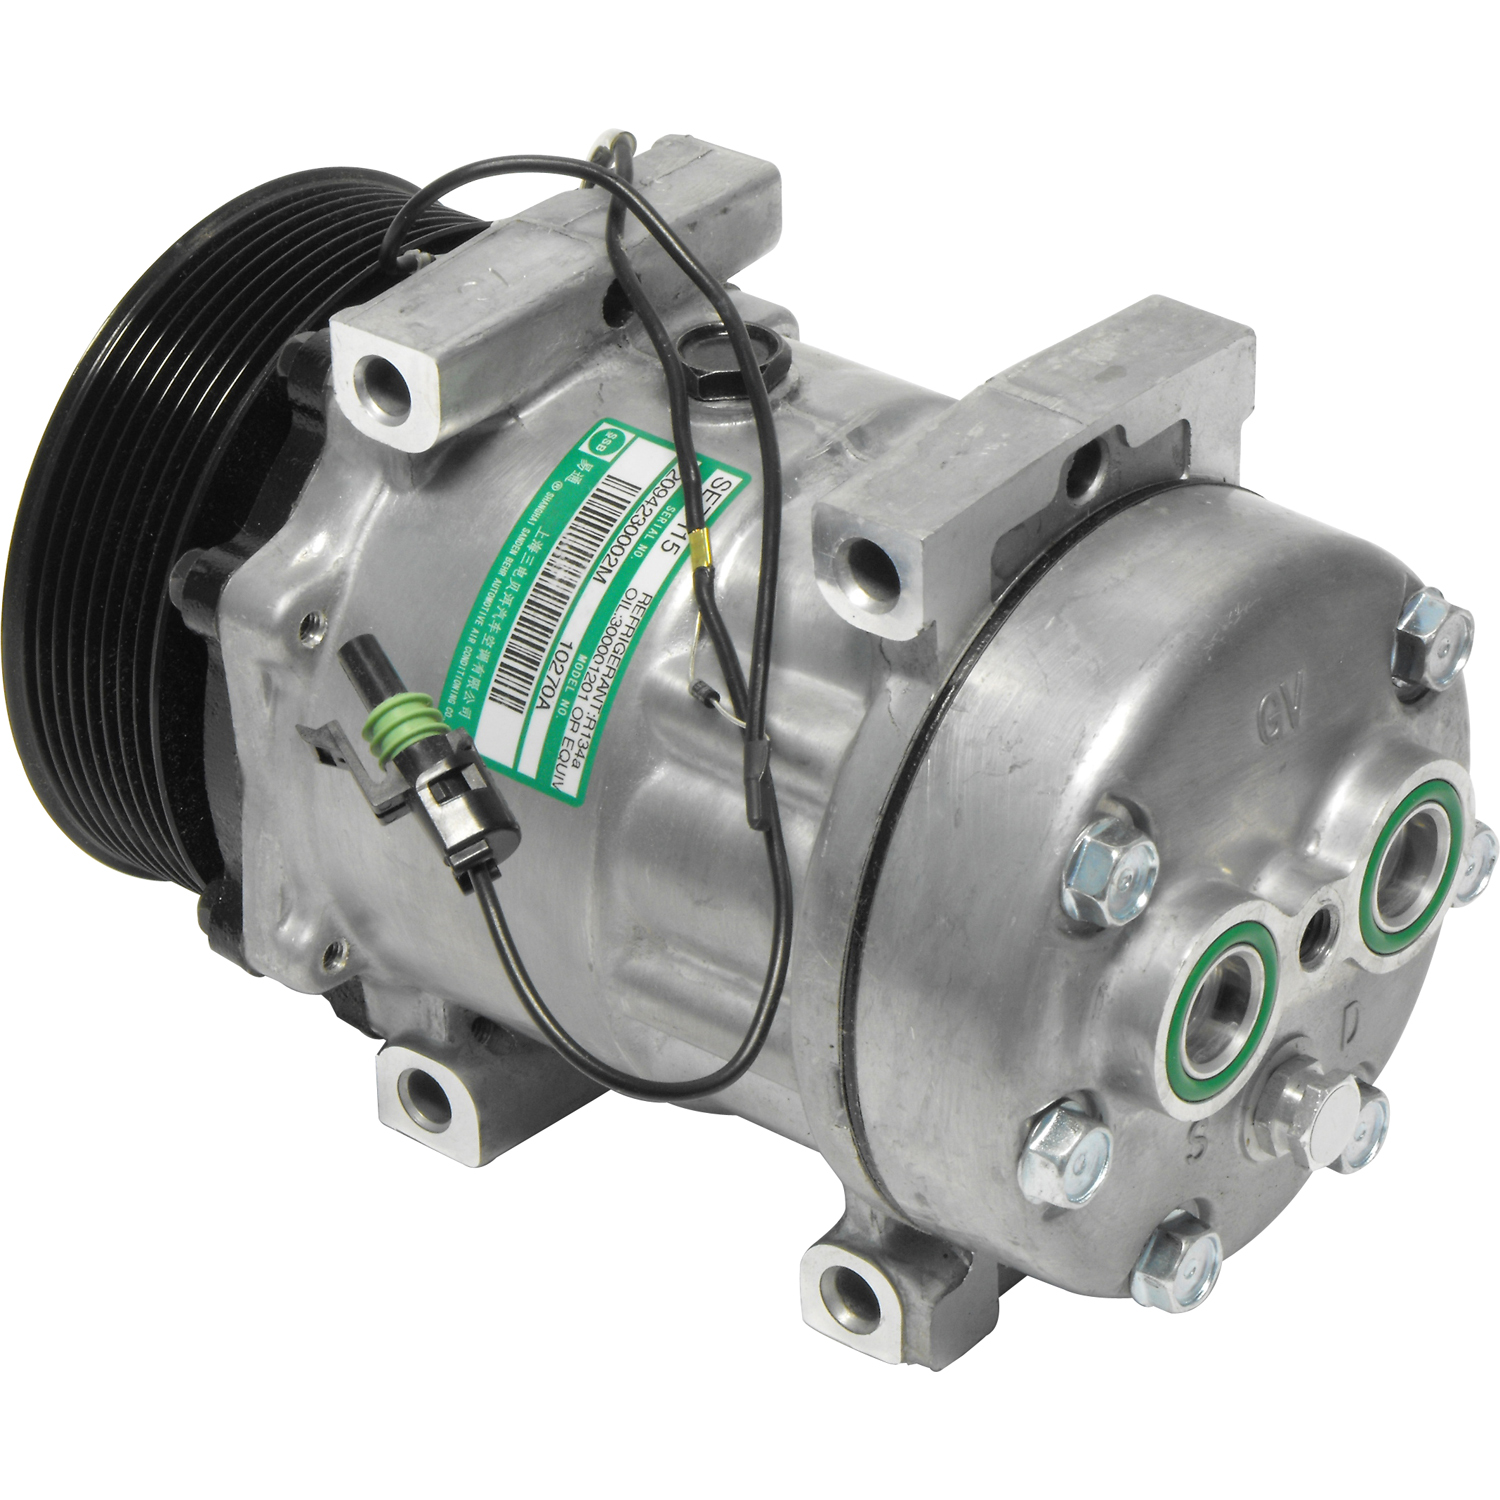 New A/C Compressor and Clutch CO 4028C - 4028